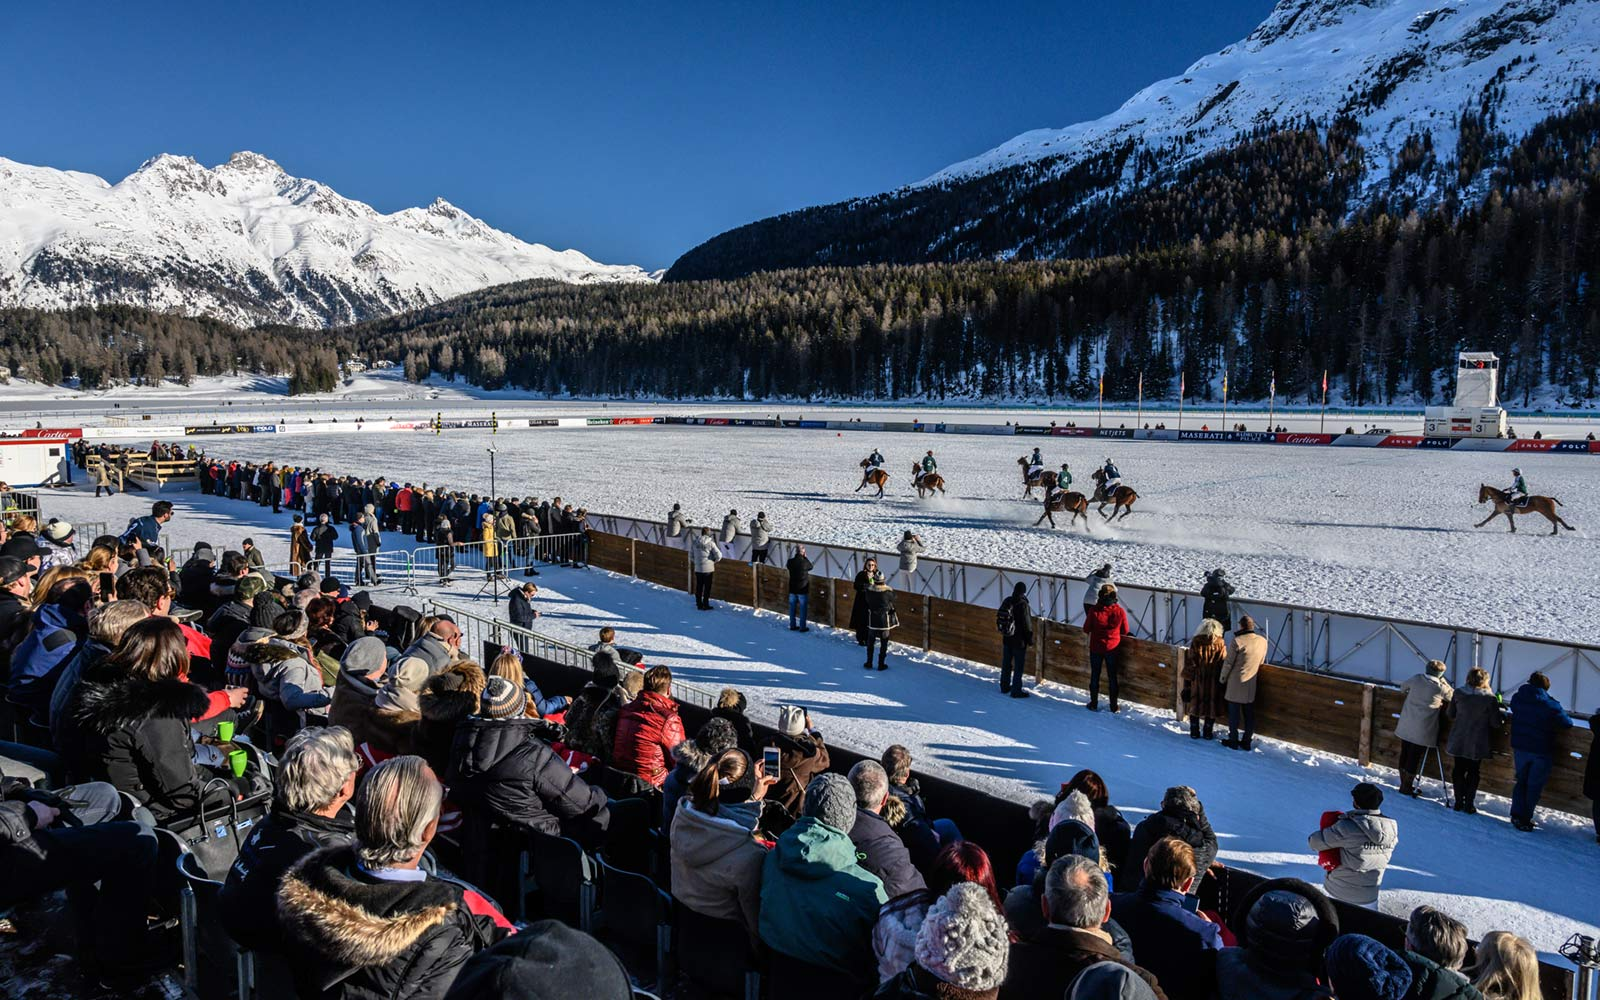 Spectators at Snow Polo, St. Moritz, Switzerland